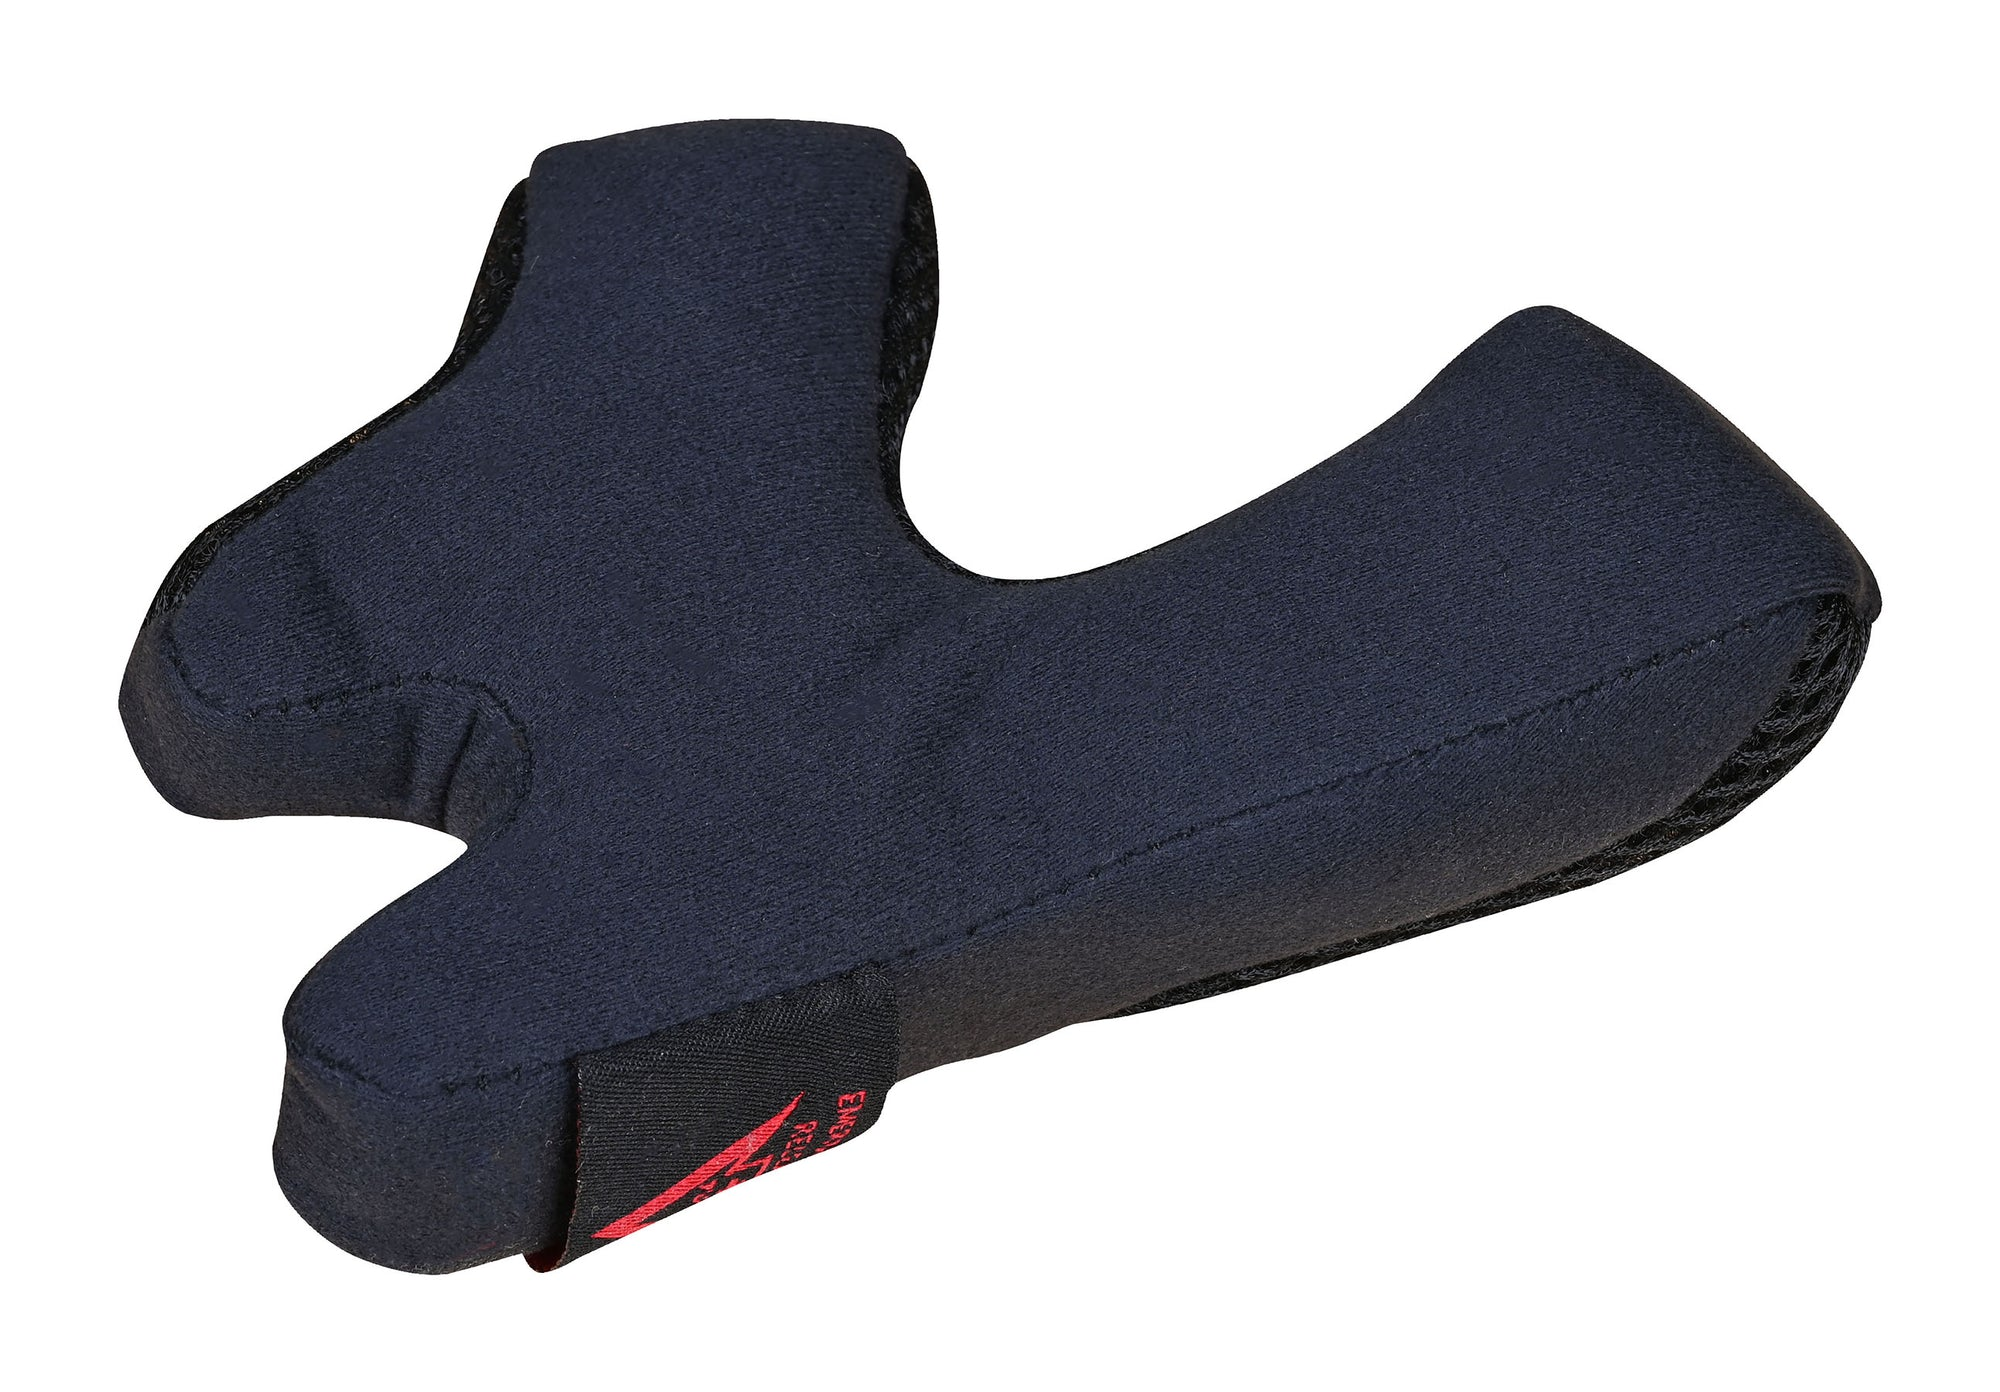 GP CHEEKPADS SOLID BLACK